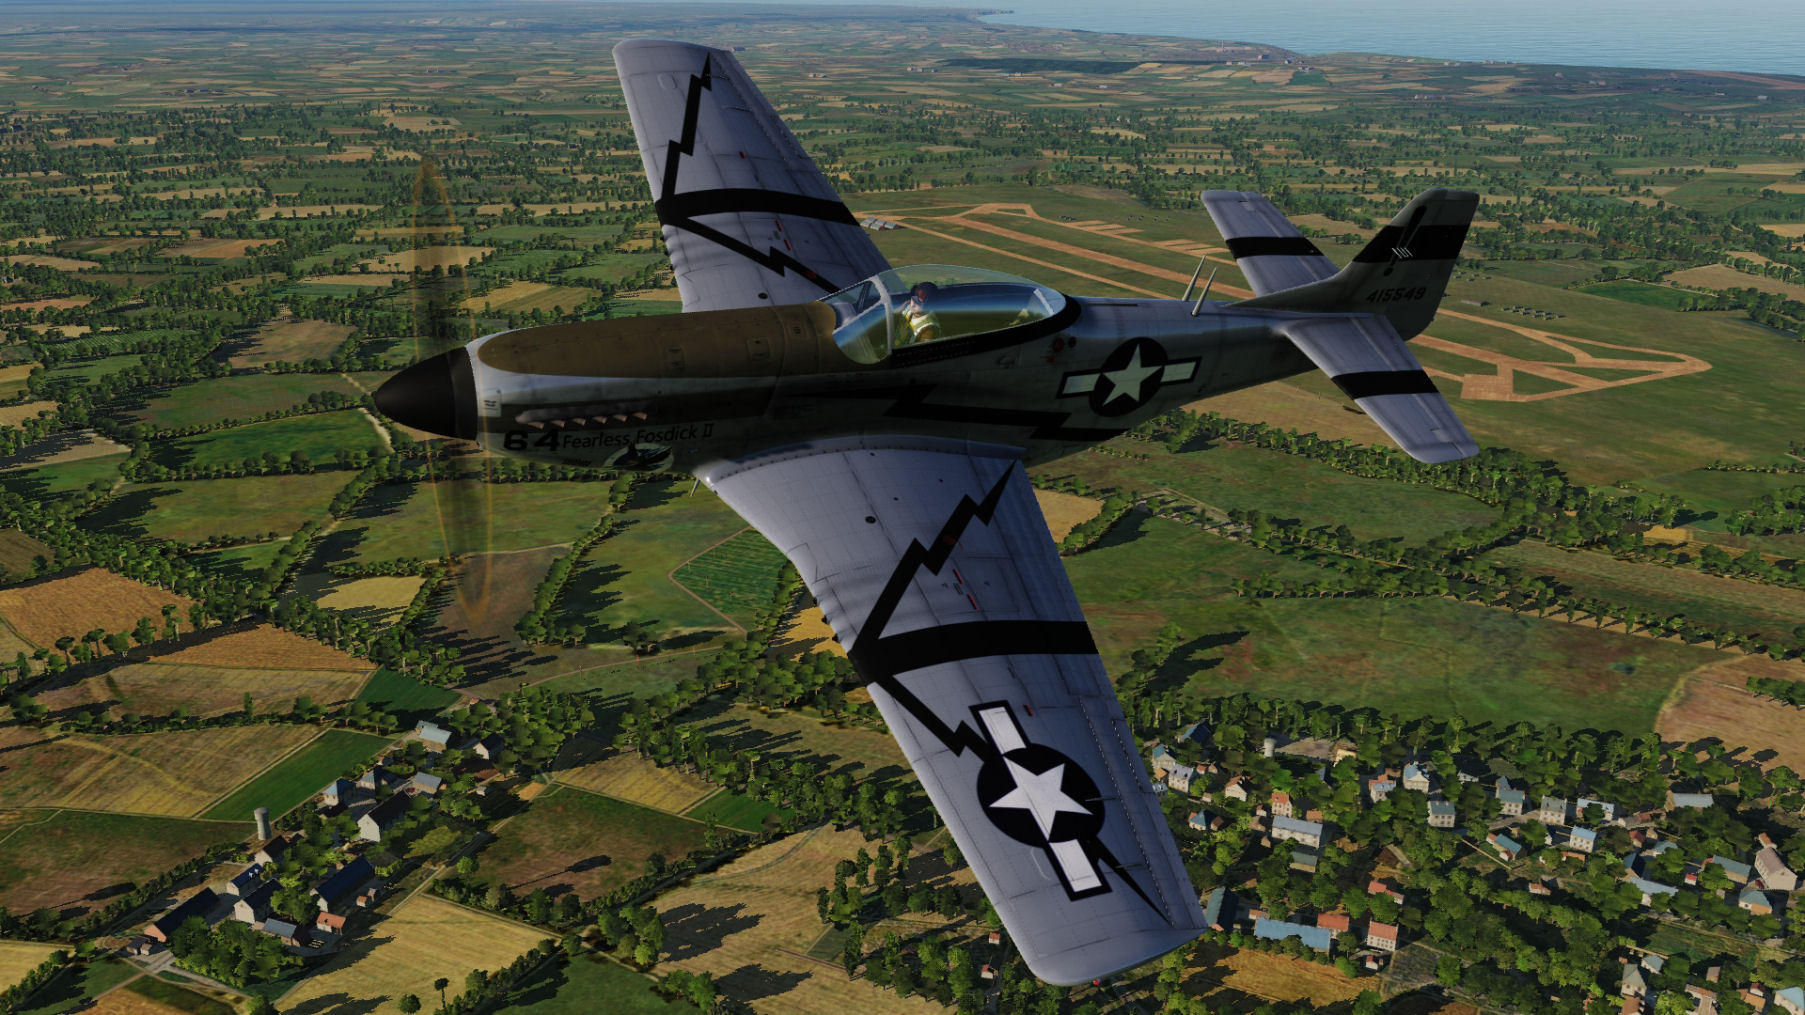 Fearless Fossdick II 44-15549 2nd FS, 2nd ACG updated for DCS World 2.5.5